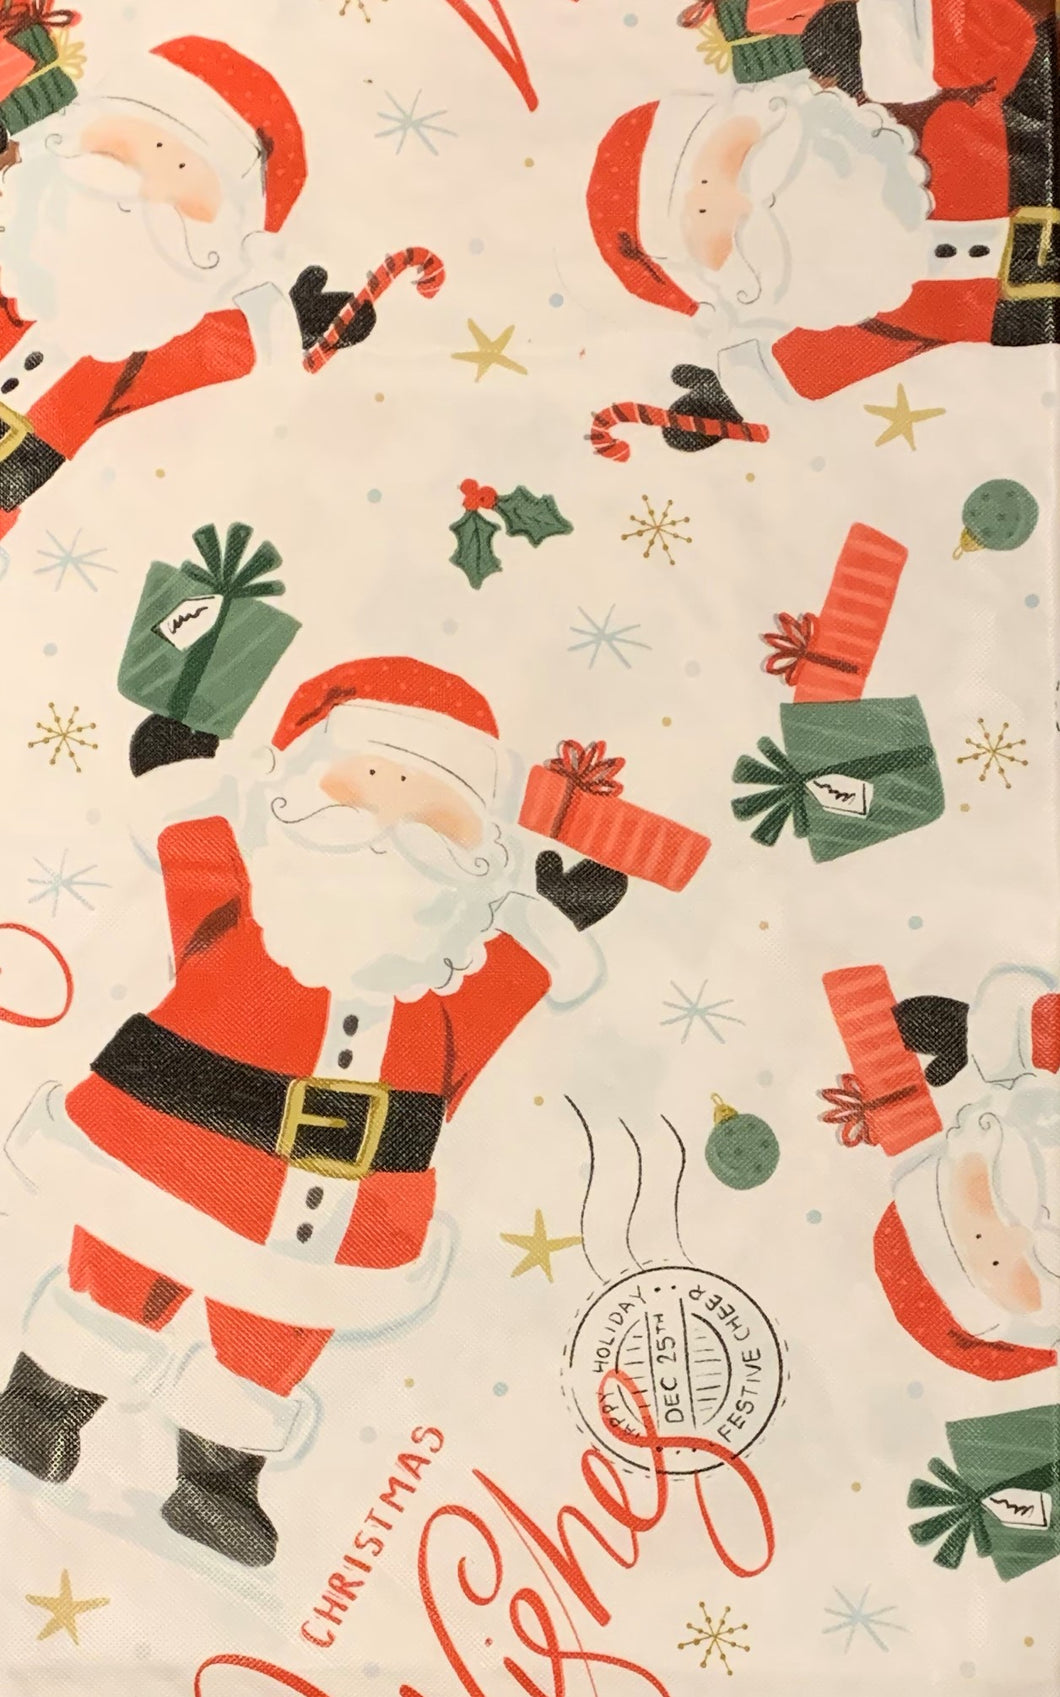 Christmas Vinyl Flannel Tablecloth 52 x 70 Oblong Wishes and Santa Claus